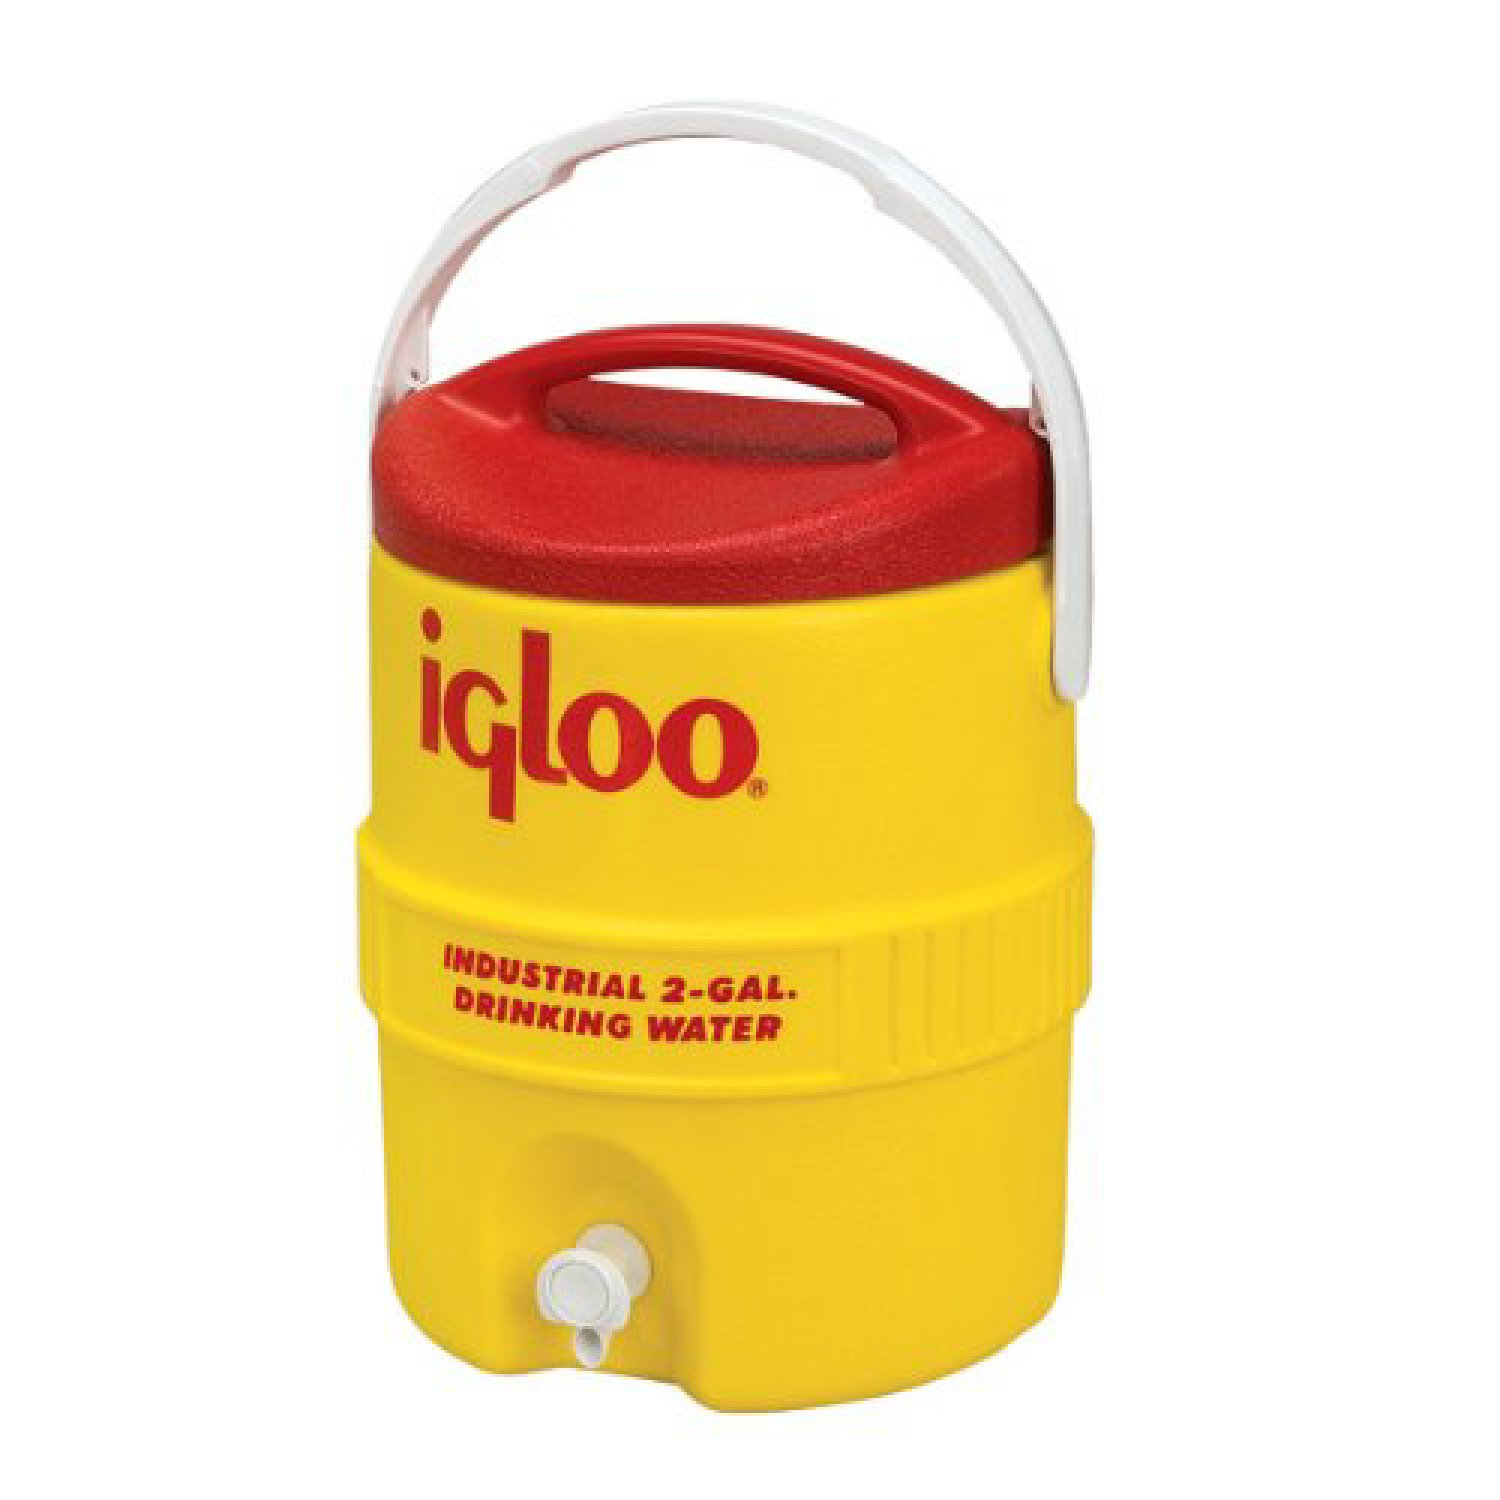 SEPTLS385421 - Igloo 400 Series Coolers - 421